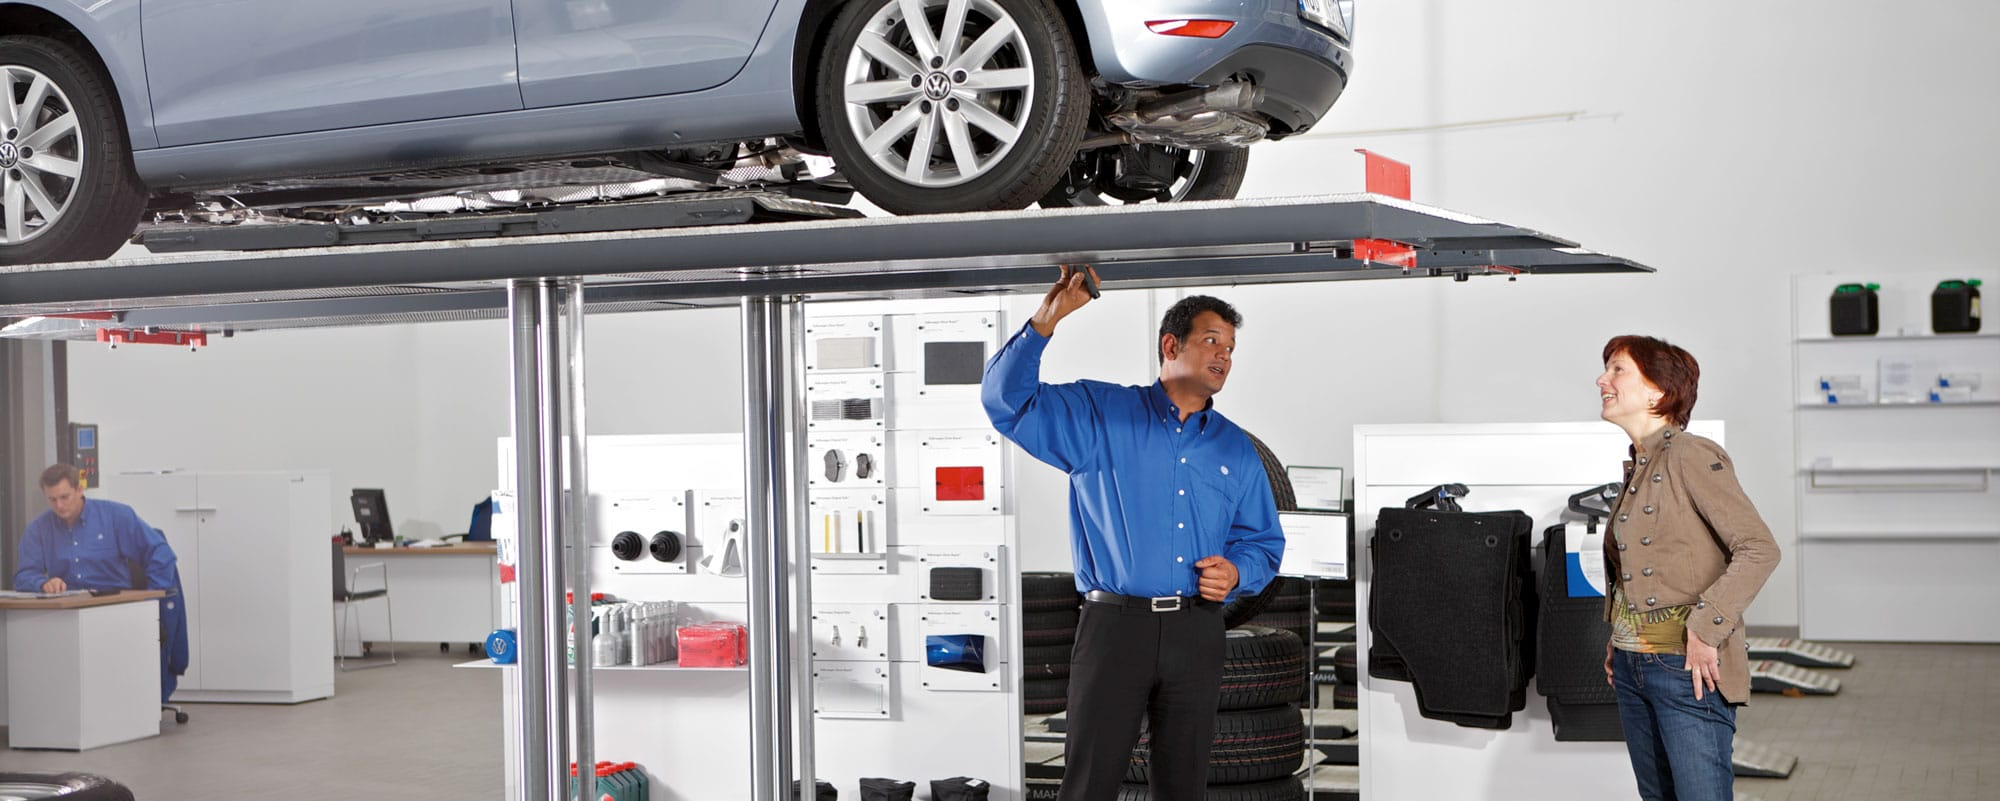 Volkswagen Vehicle Inspection Hero